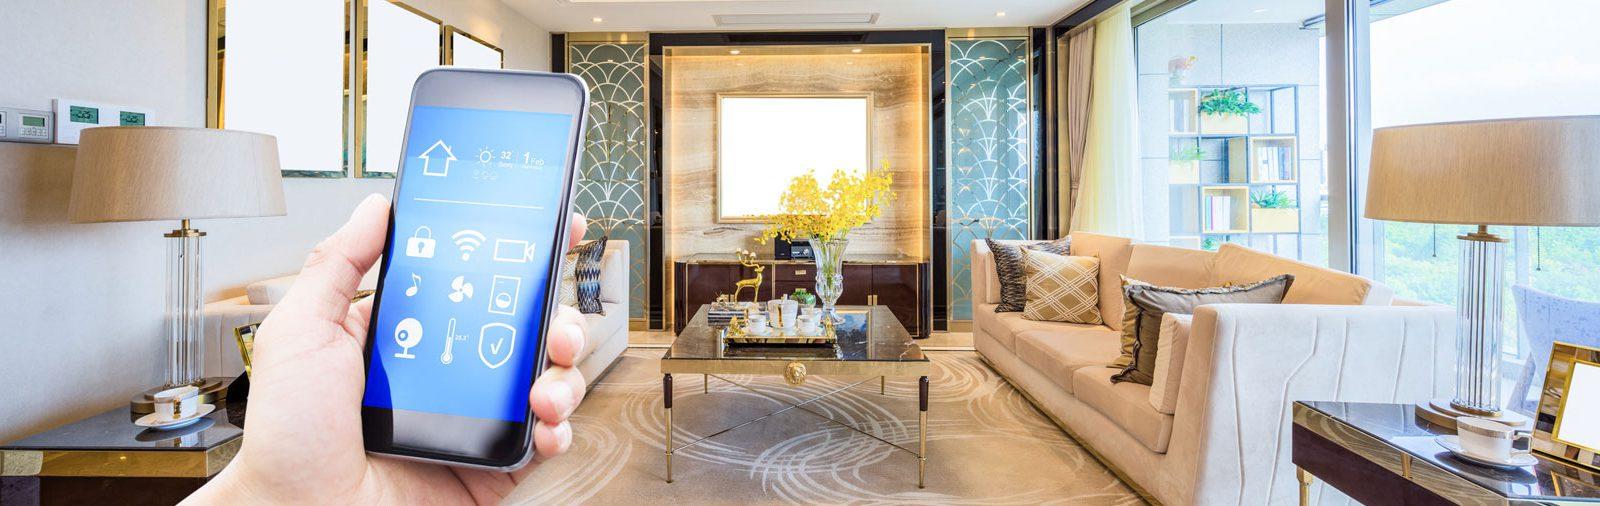 Mobile phone controlling home automation qualicum beach parksville nanaimo electricians